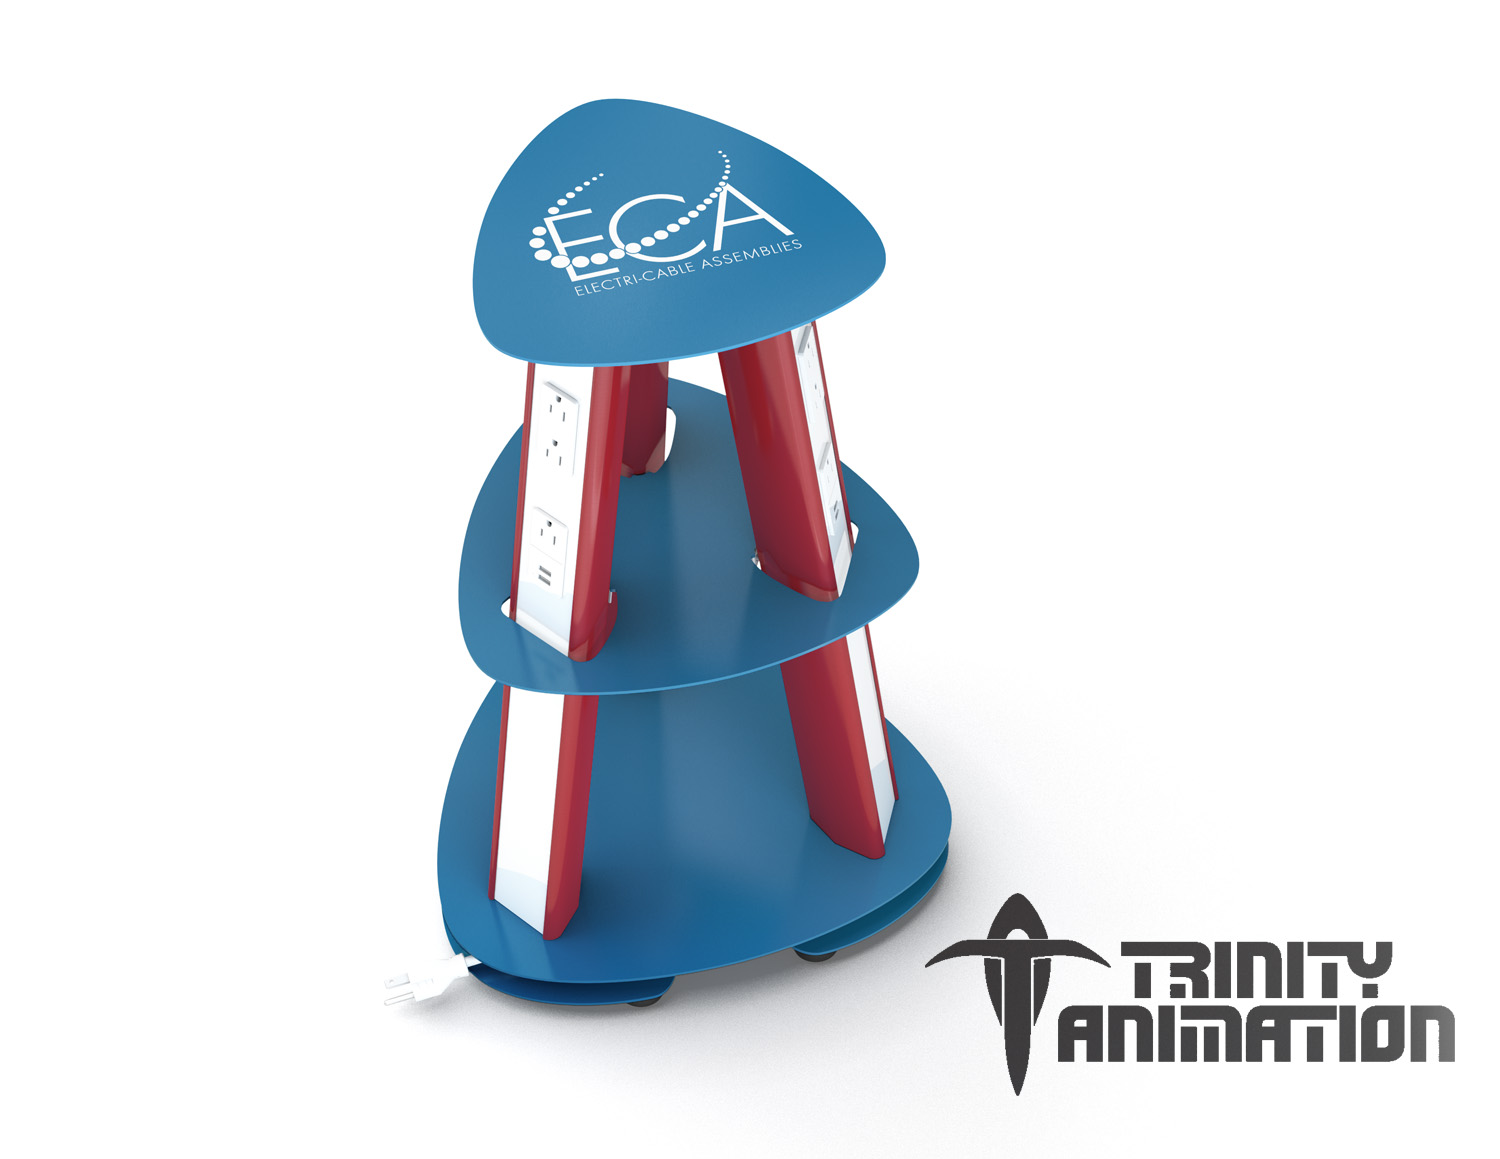 Product rendering of red, white and blue themed ECA Isle power base by Trinity Animation.